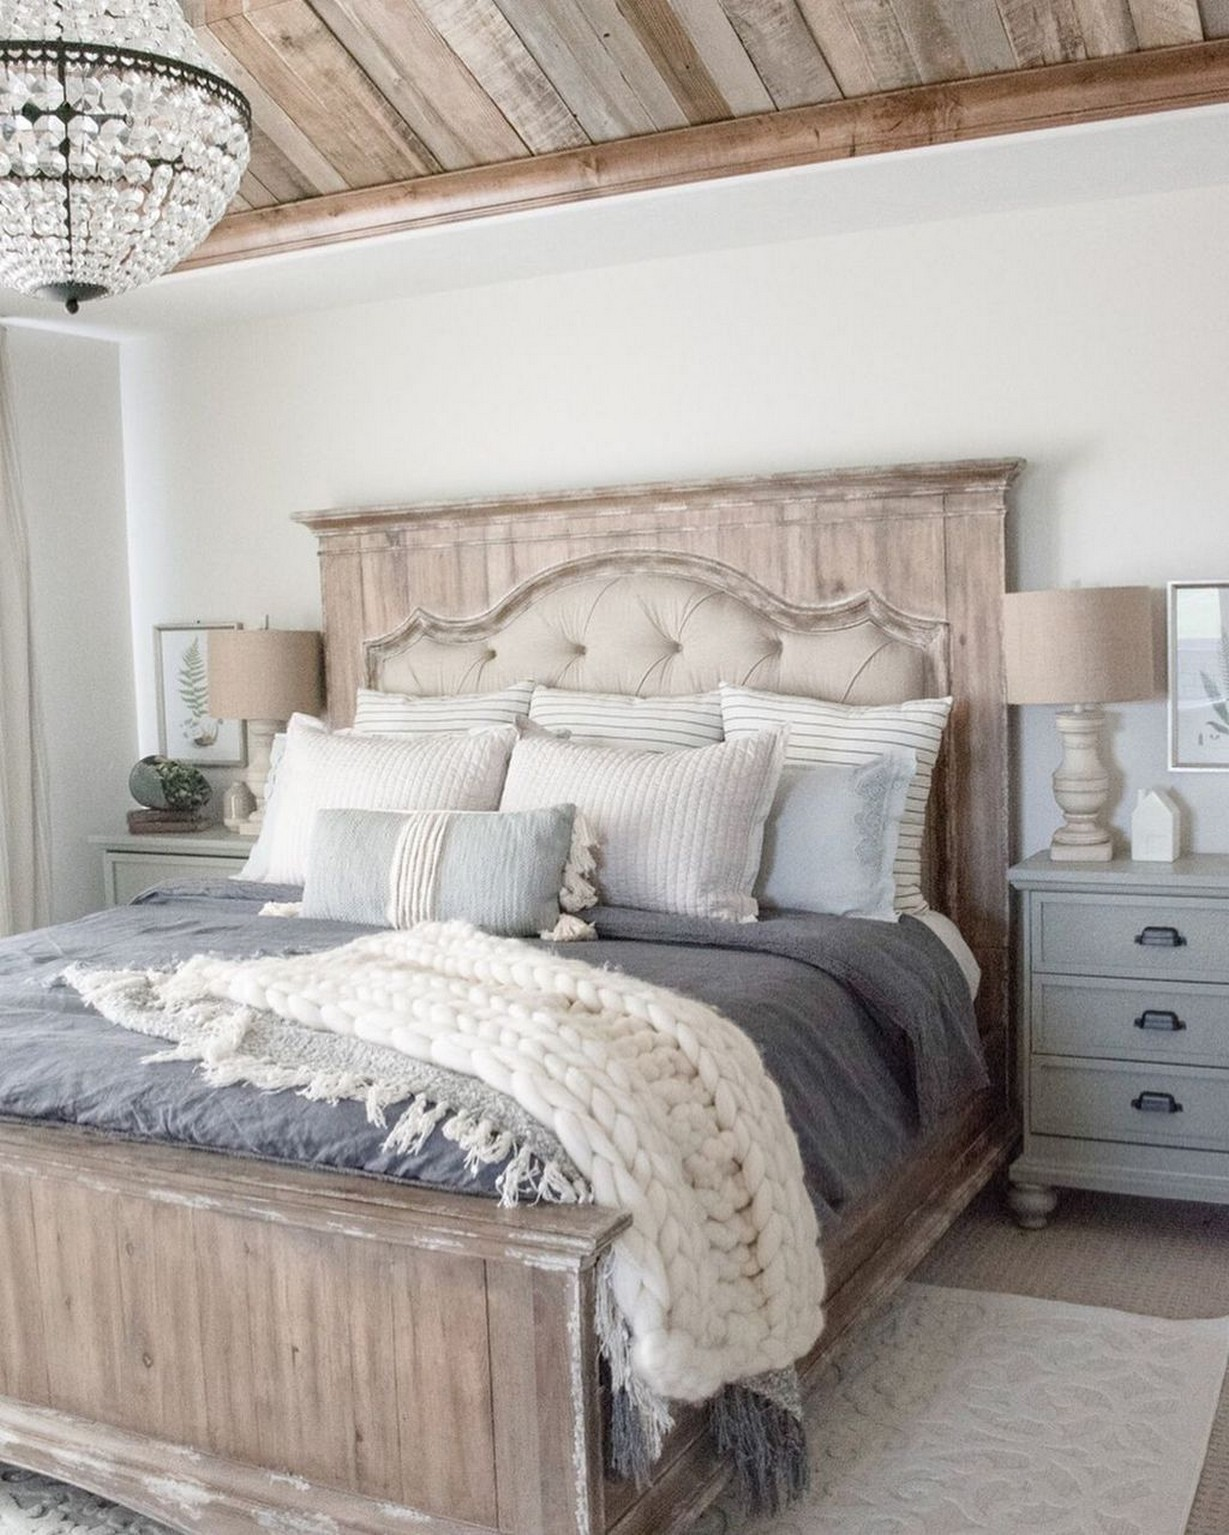 64 Rustic Bedroom Furniture How to Look Elegance Home Decor 42